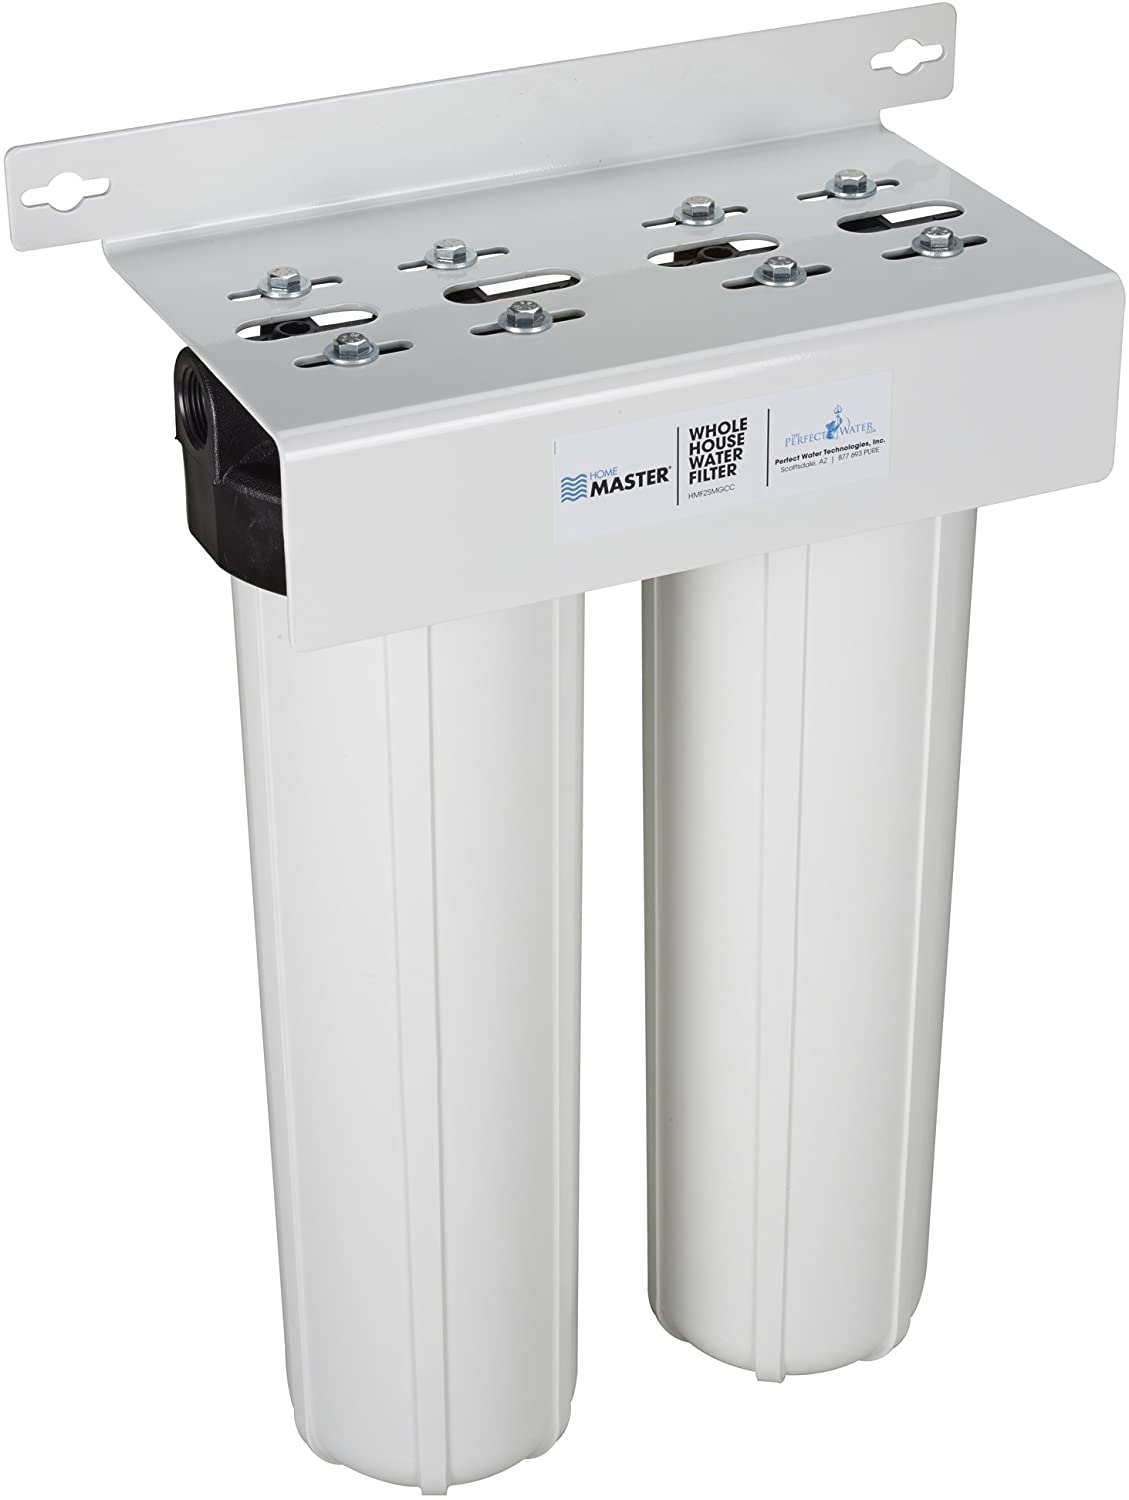 Home Master Water Softener